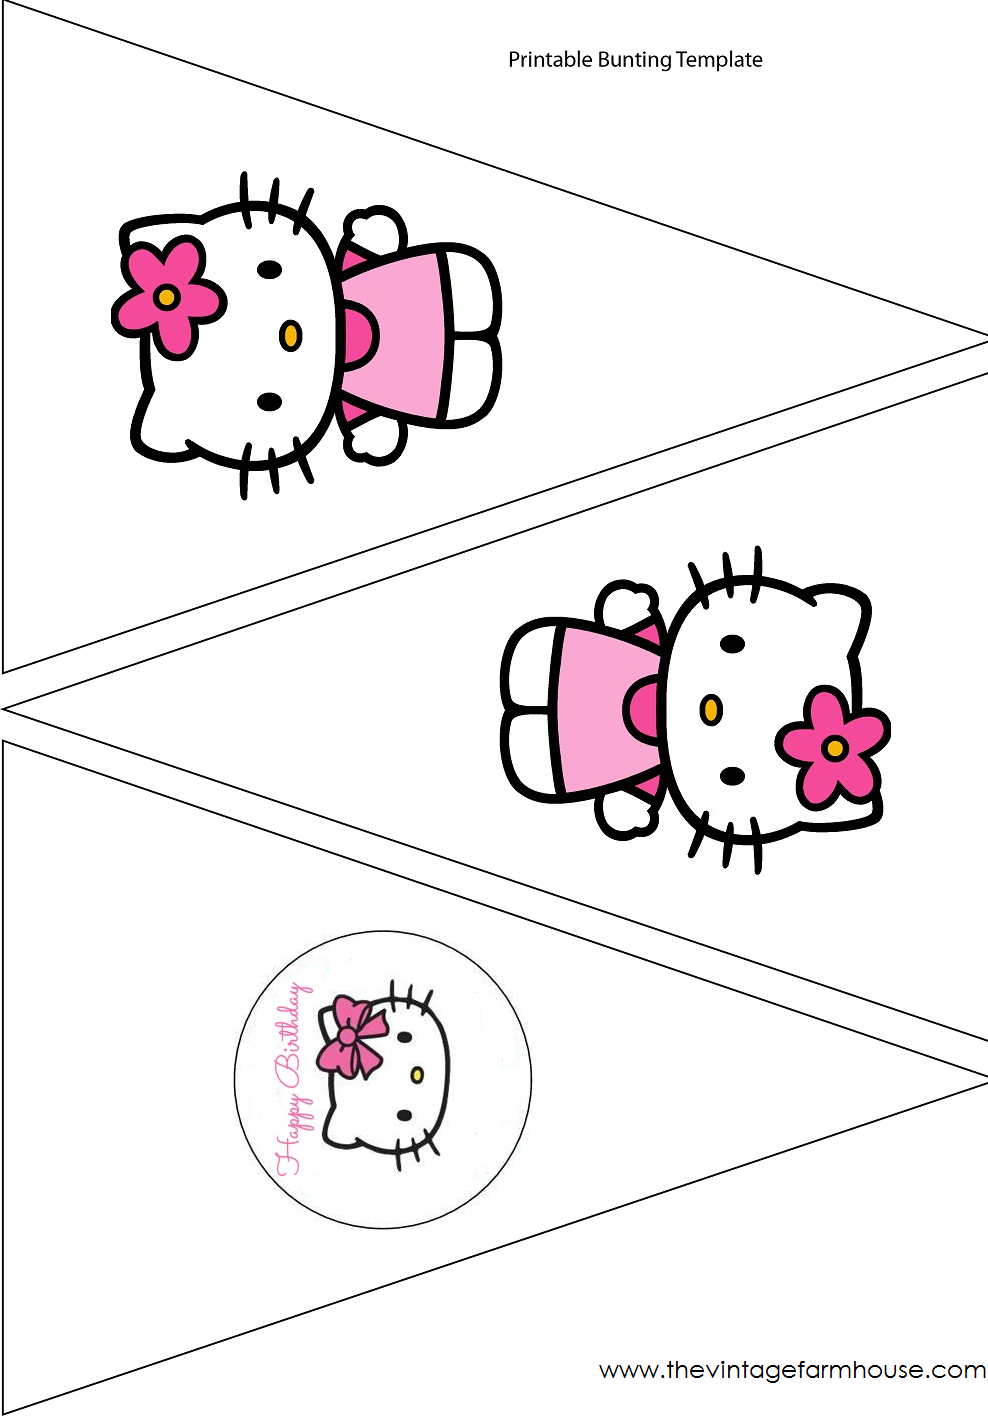 Simple Cute Hello Kitty Free Printable Kit Oh My Fiesta In English